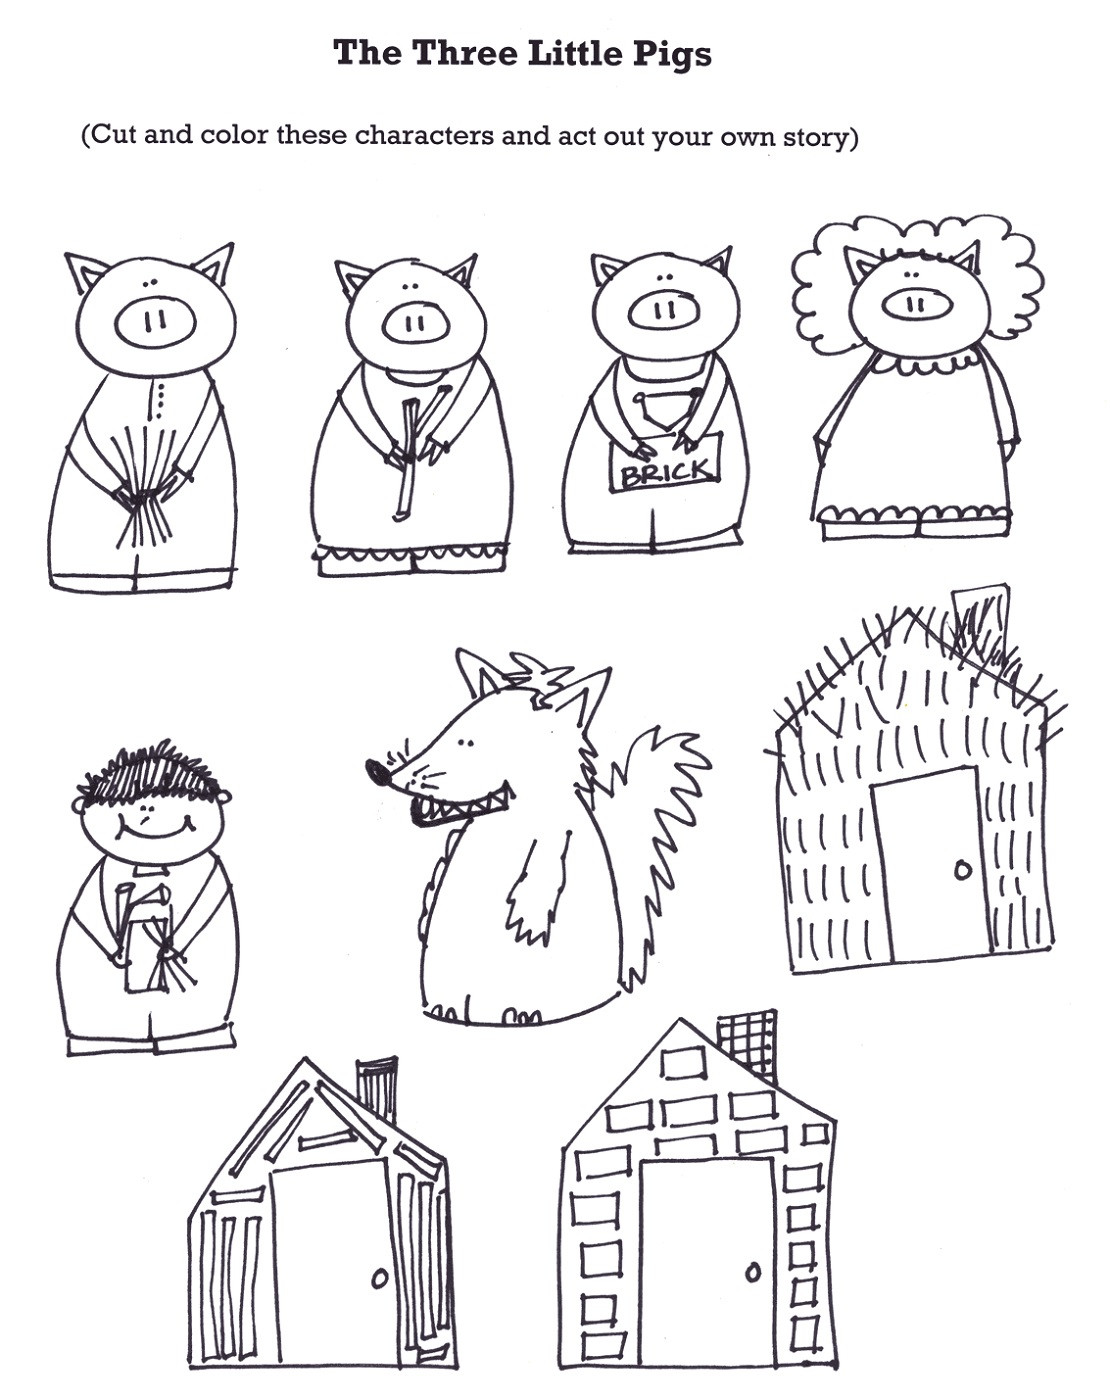 Preschool Coloring Sheets For The 3 Little Pigs Paper Plate Pig  The Three Little Pigs Worksheets